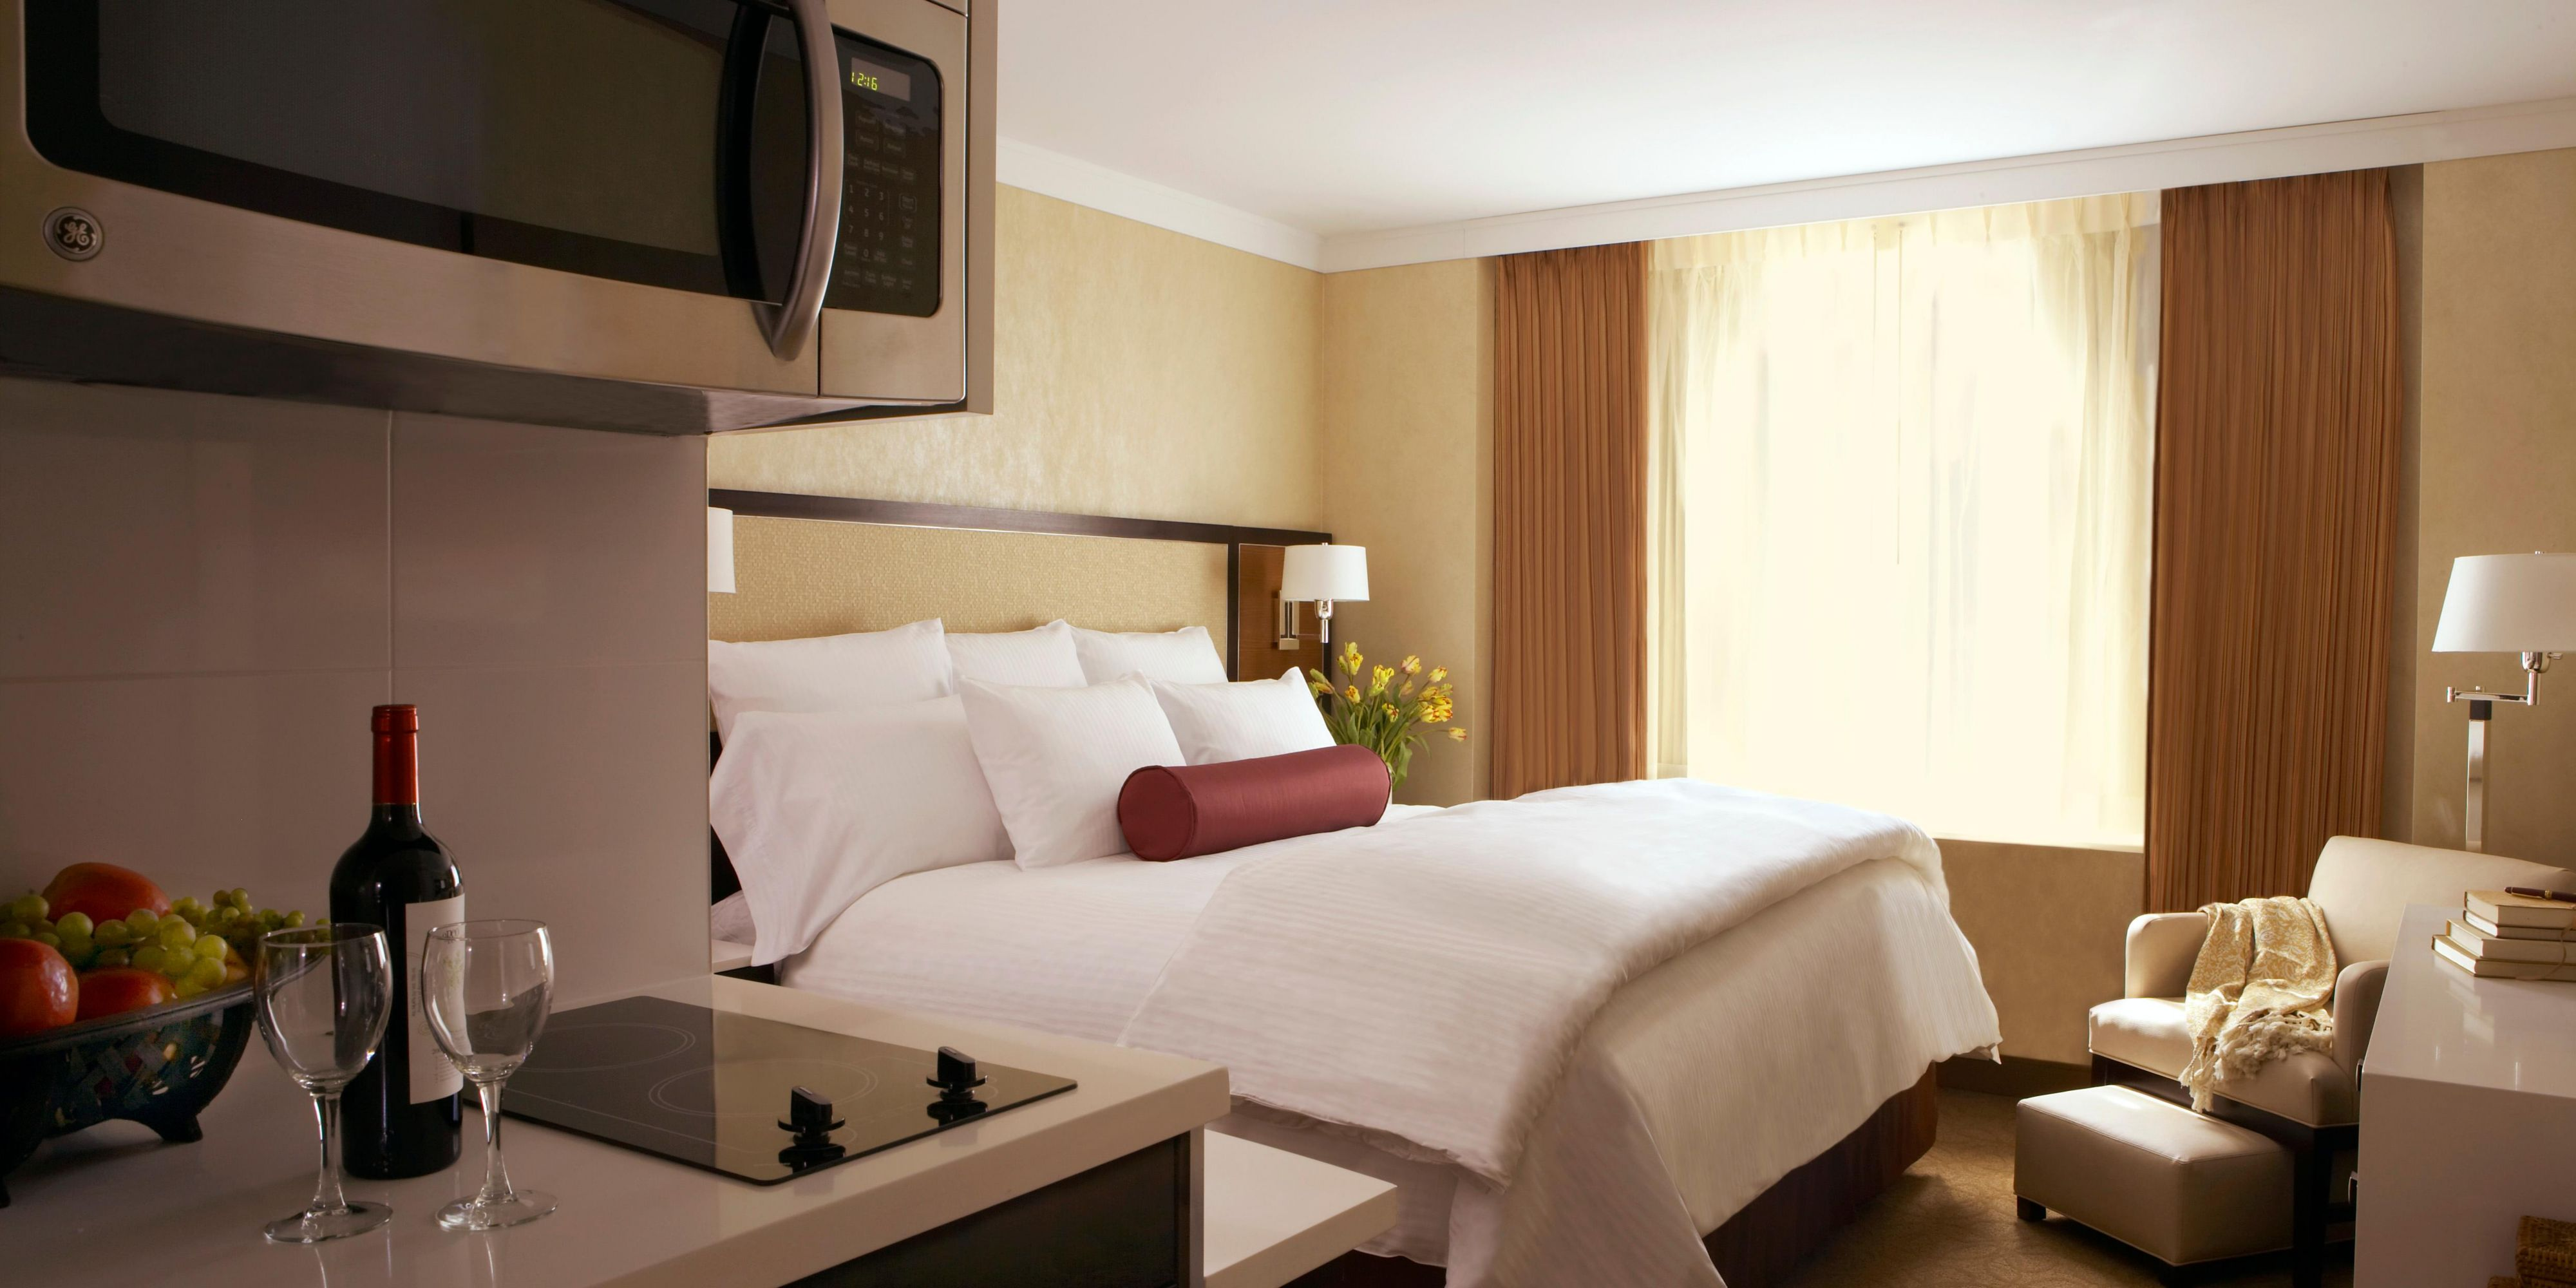 Best Hotel To Stay In New York Times Square